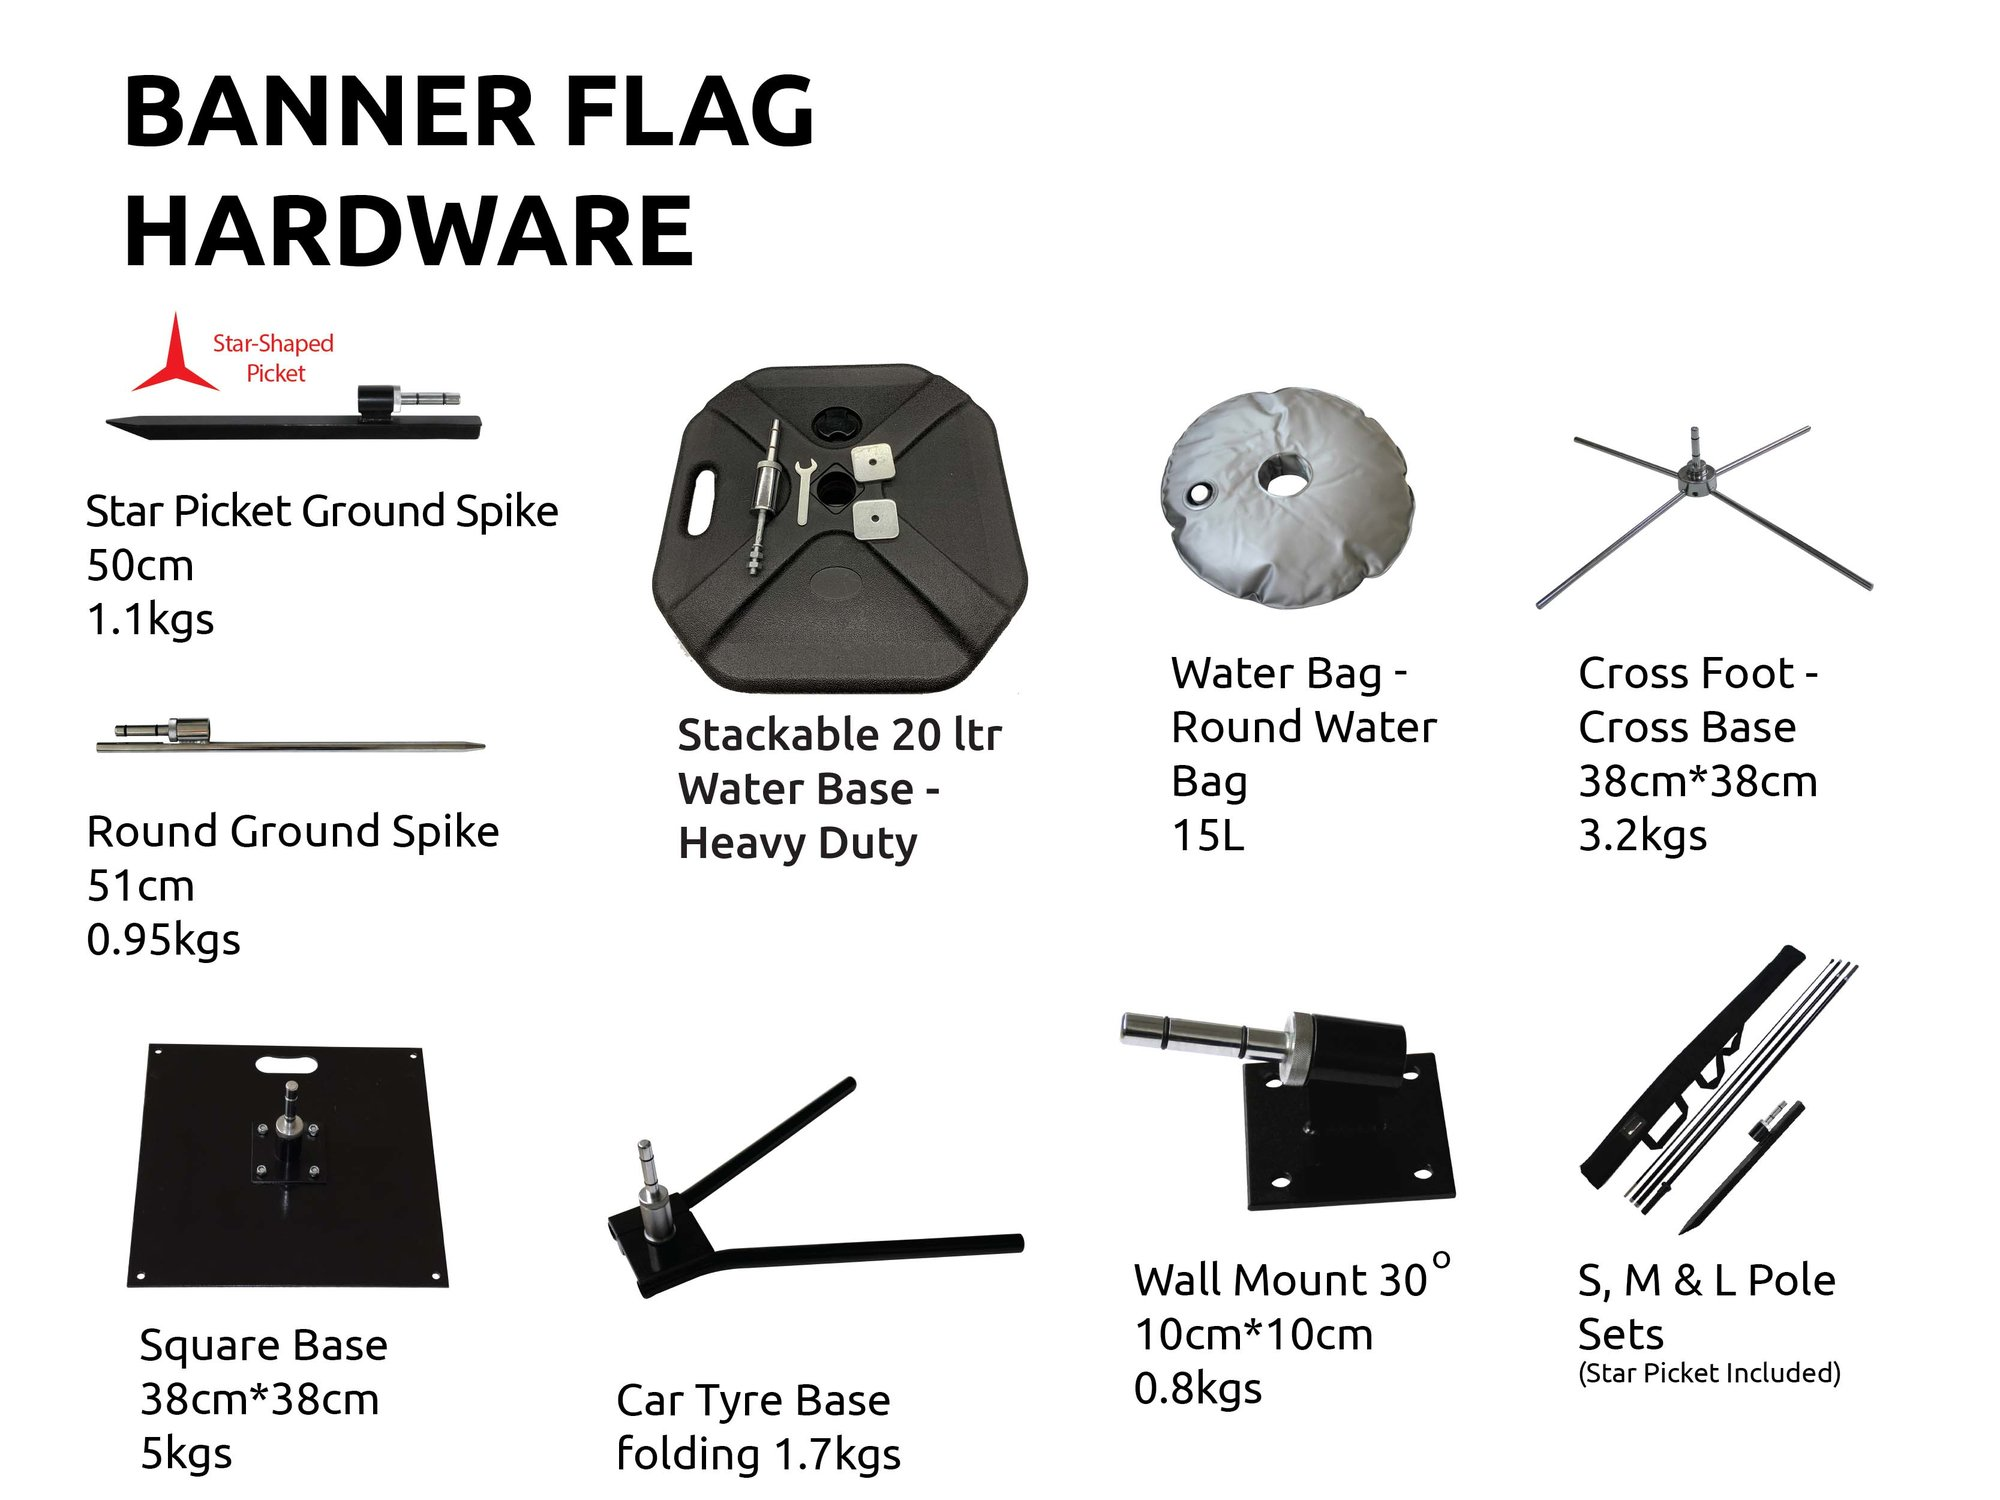 Flag Banners replacement poles and bases